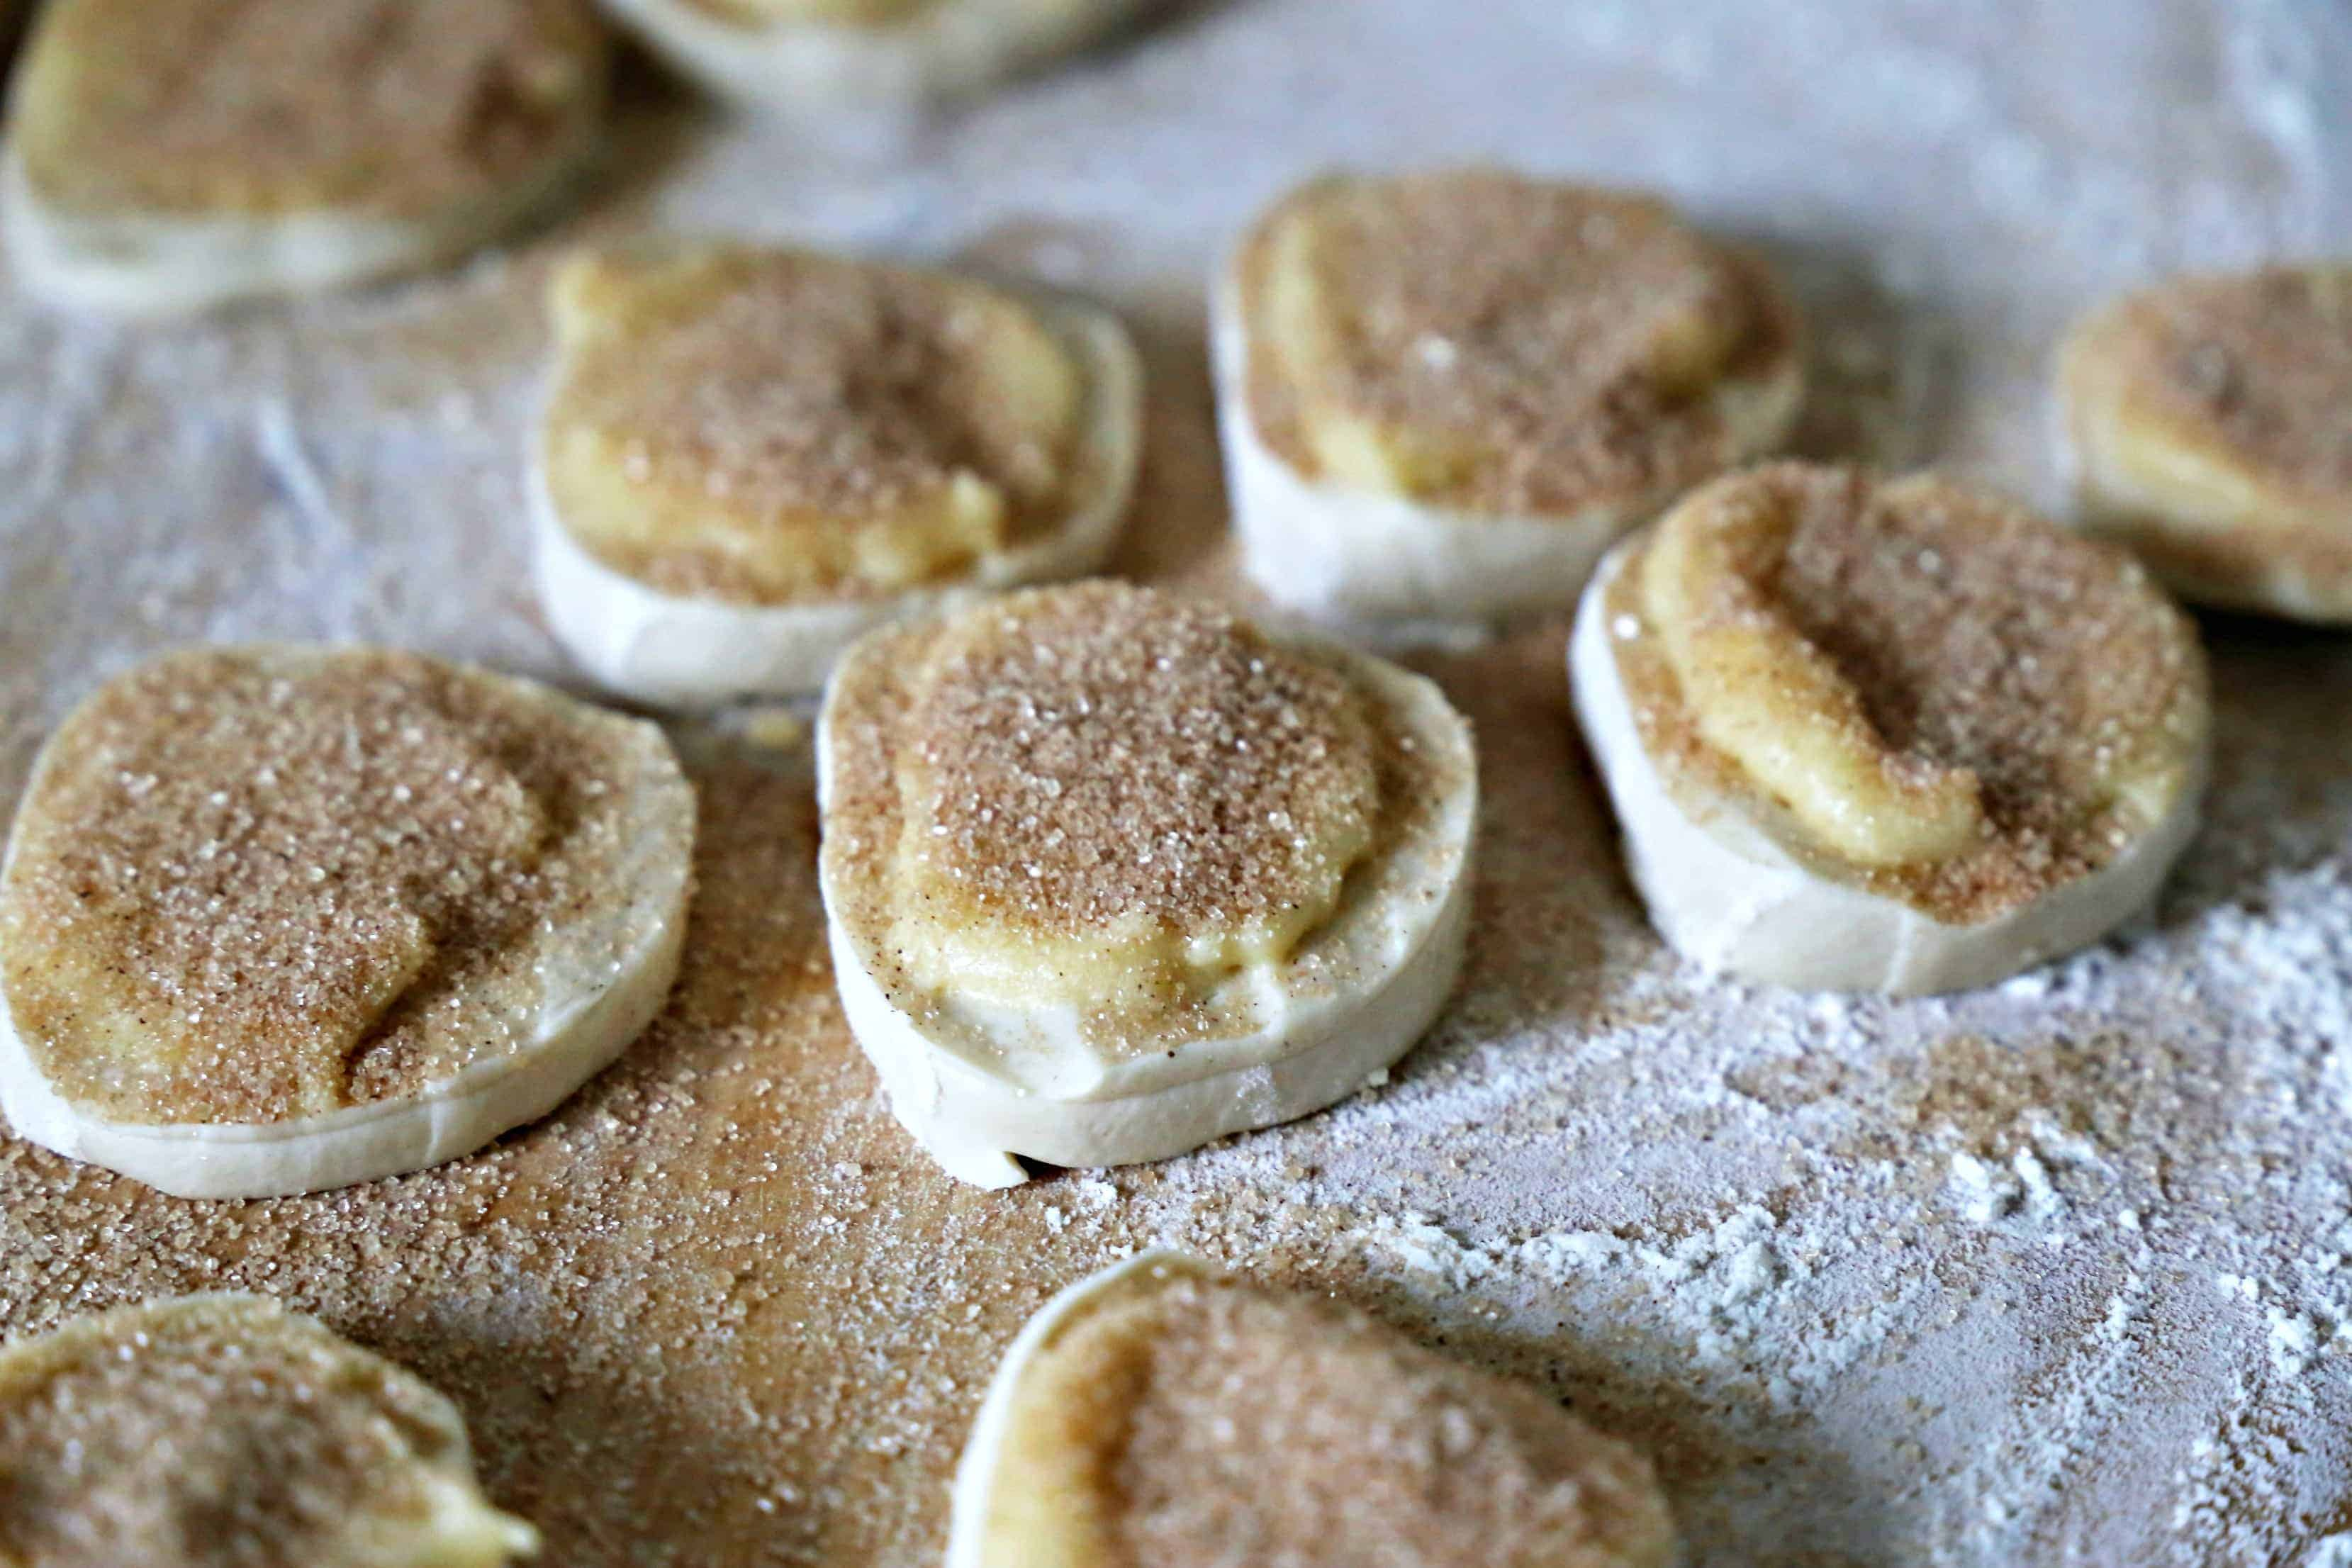 bread dough rounds with butter and cinnamon sugar